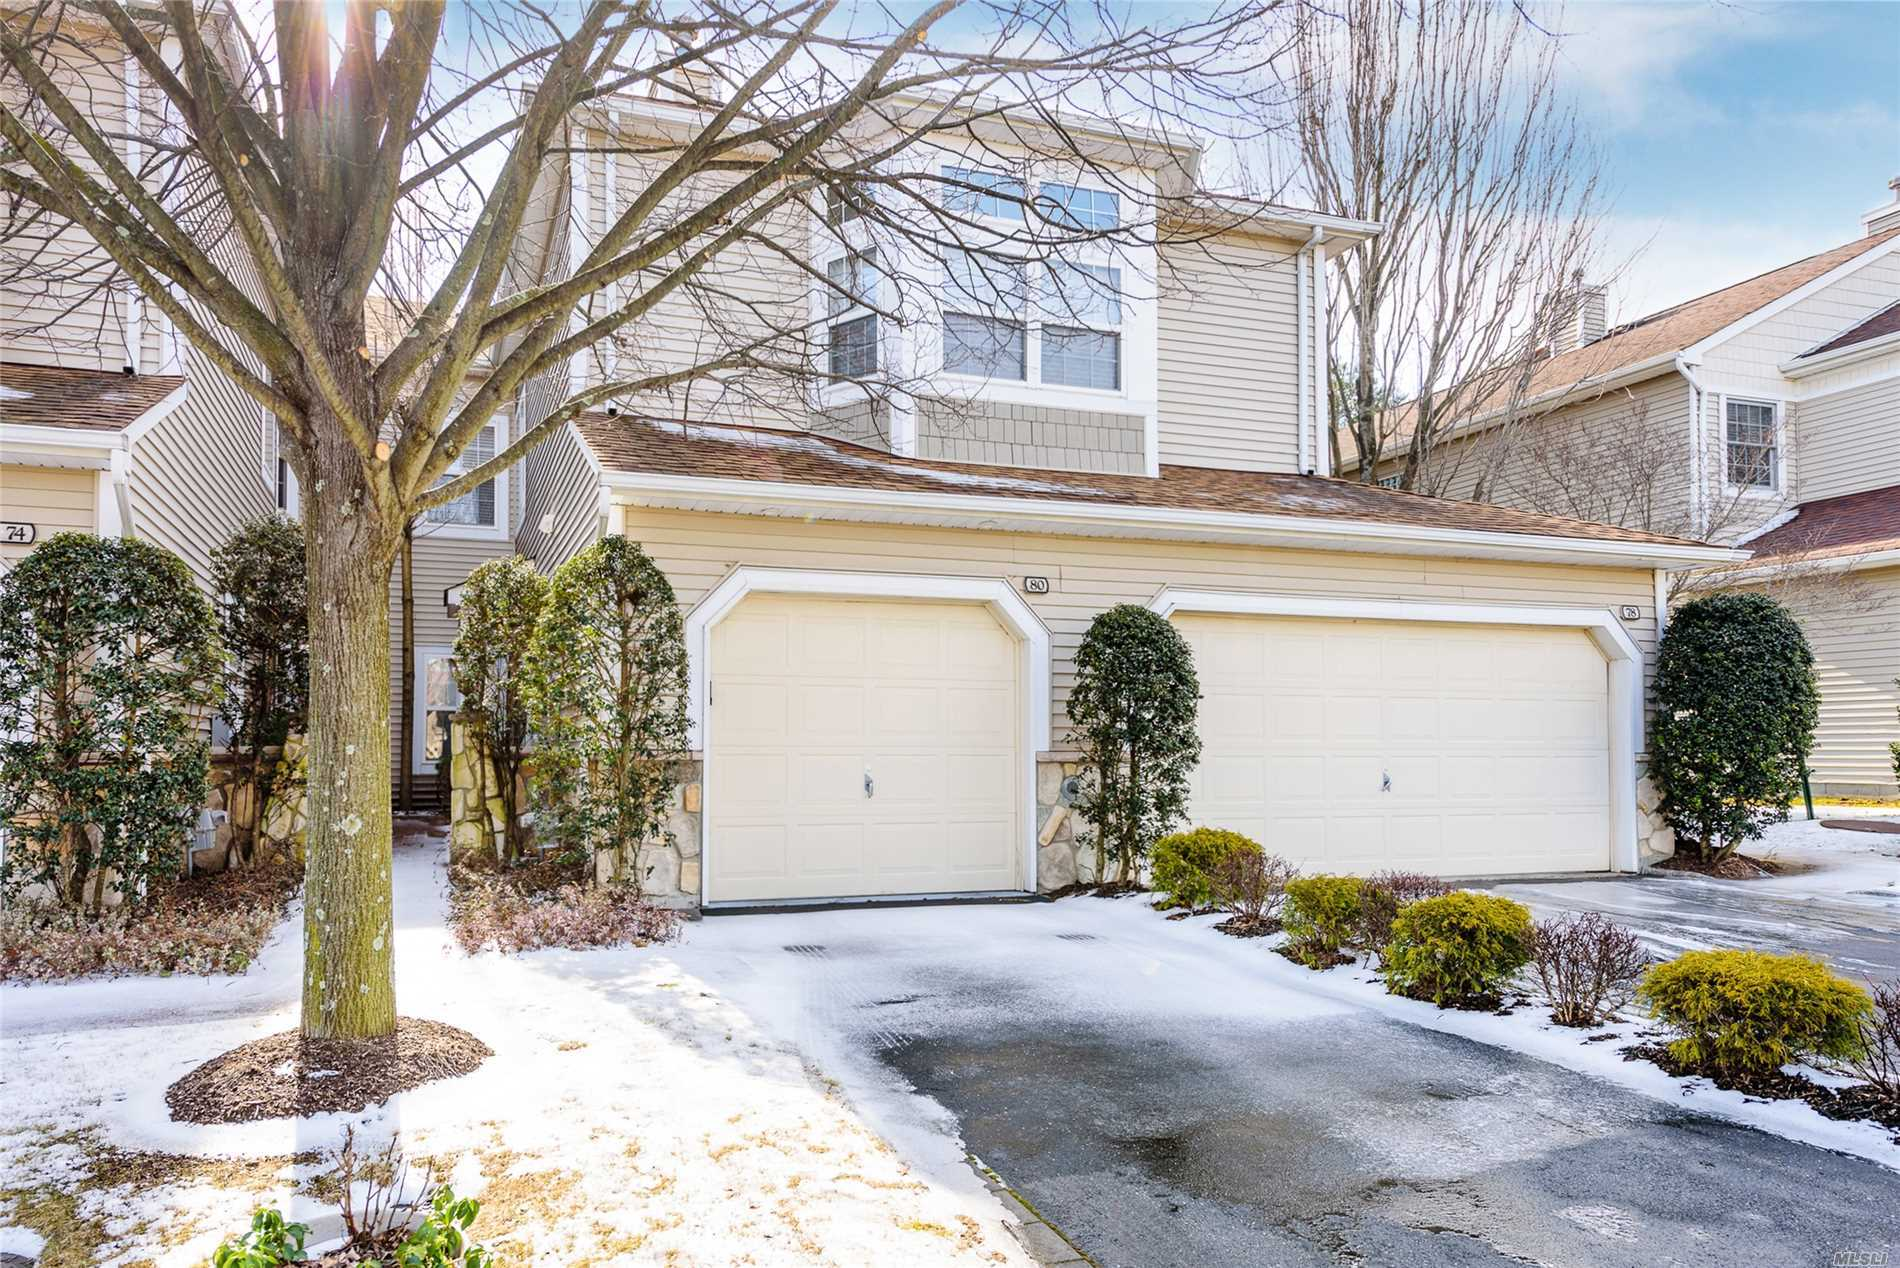 Luxury Living In Olde Oyster Bay Hamlet Gated Community. Beautfiul Light And Bright End Unit Modern Home Open And Spacious, Generously Proportioned Rooms. Spacious Master Suite Plus A Large Ensuite 2nd Bedroom. Custom Closets, Hardwood/Ceramic Floors, Crown Moldings And Custom Window Treatments. Amenities Include Indoor/Outdoor Pools, Restaurant, Gym, Card Rooms And More!